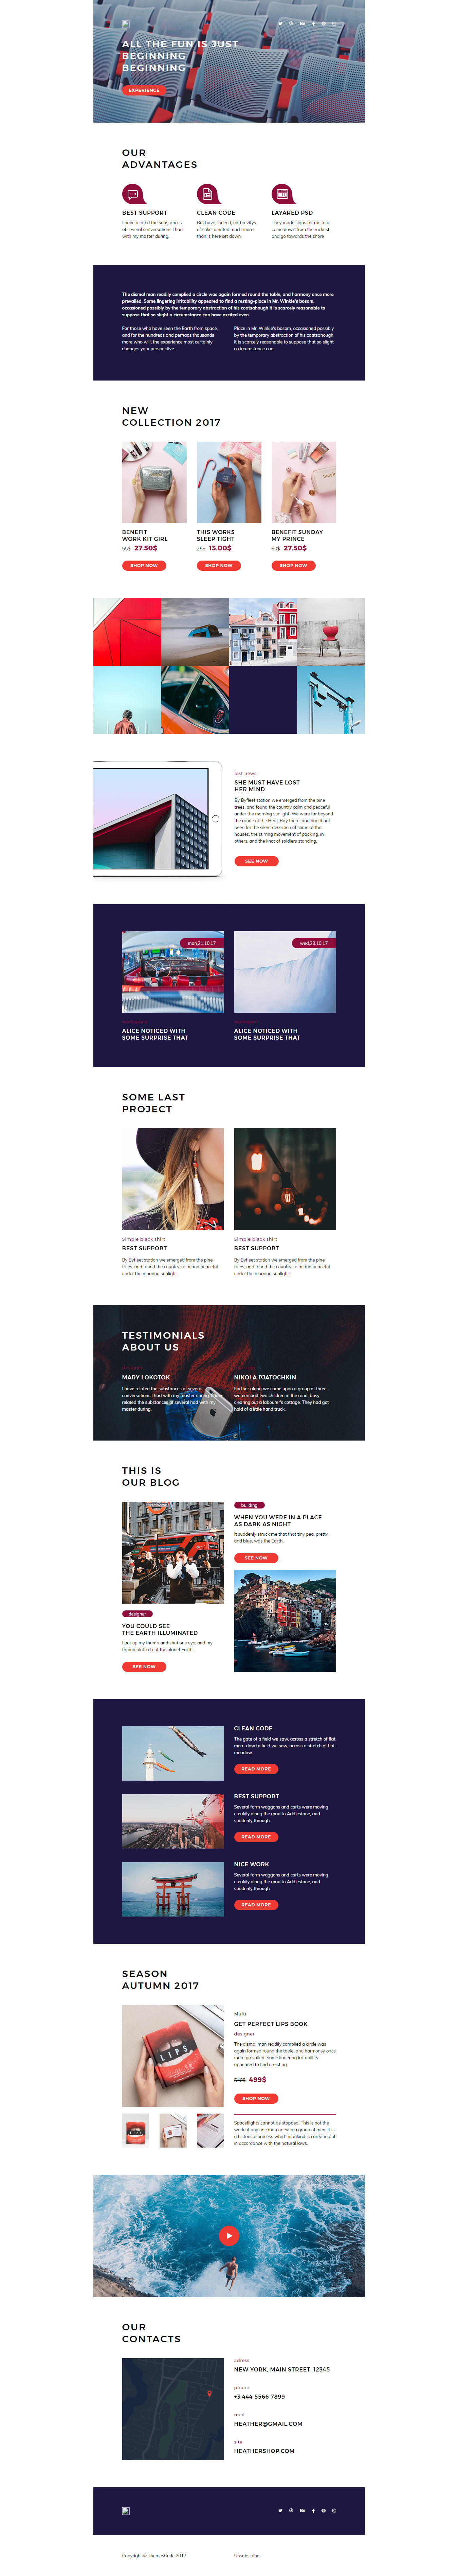 Design Editable Responsive Html Email Template  Email Campaign